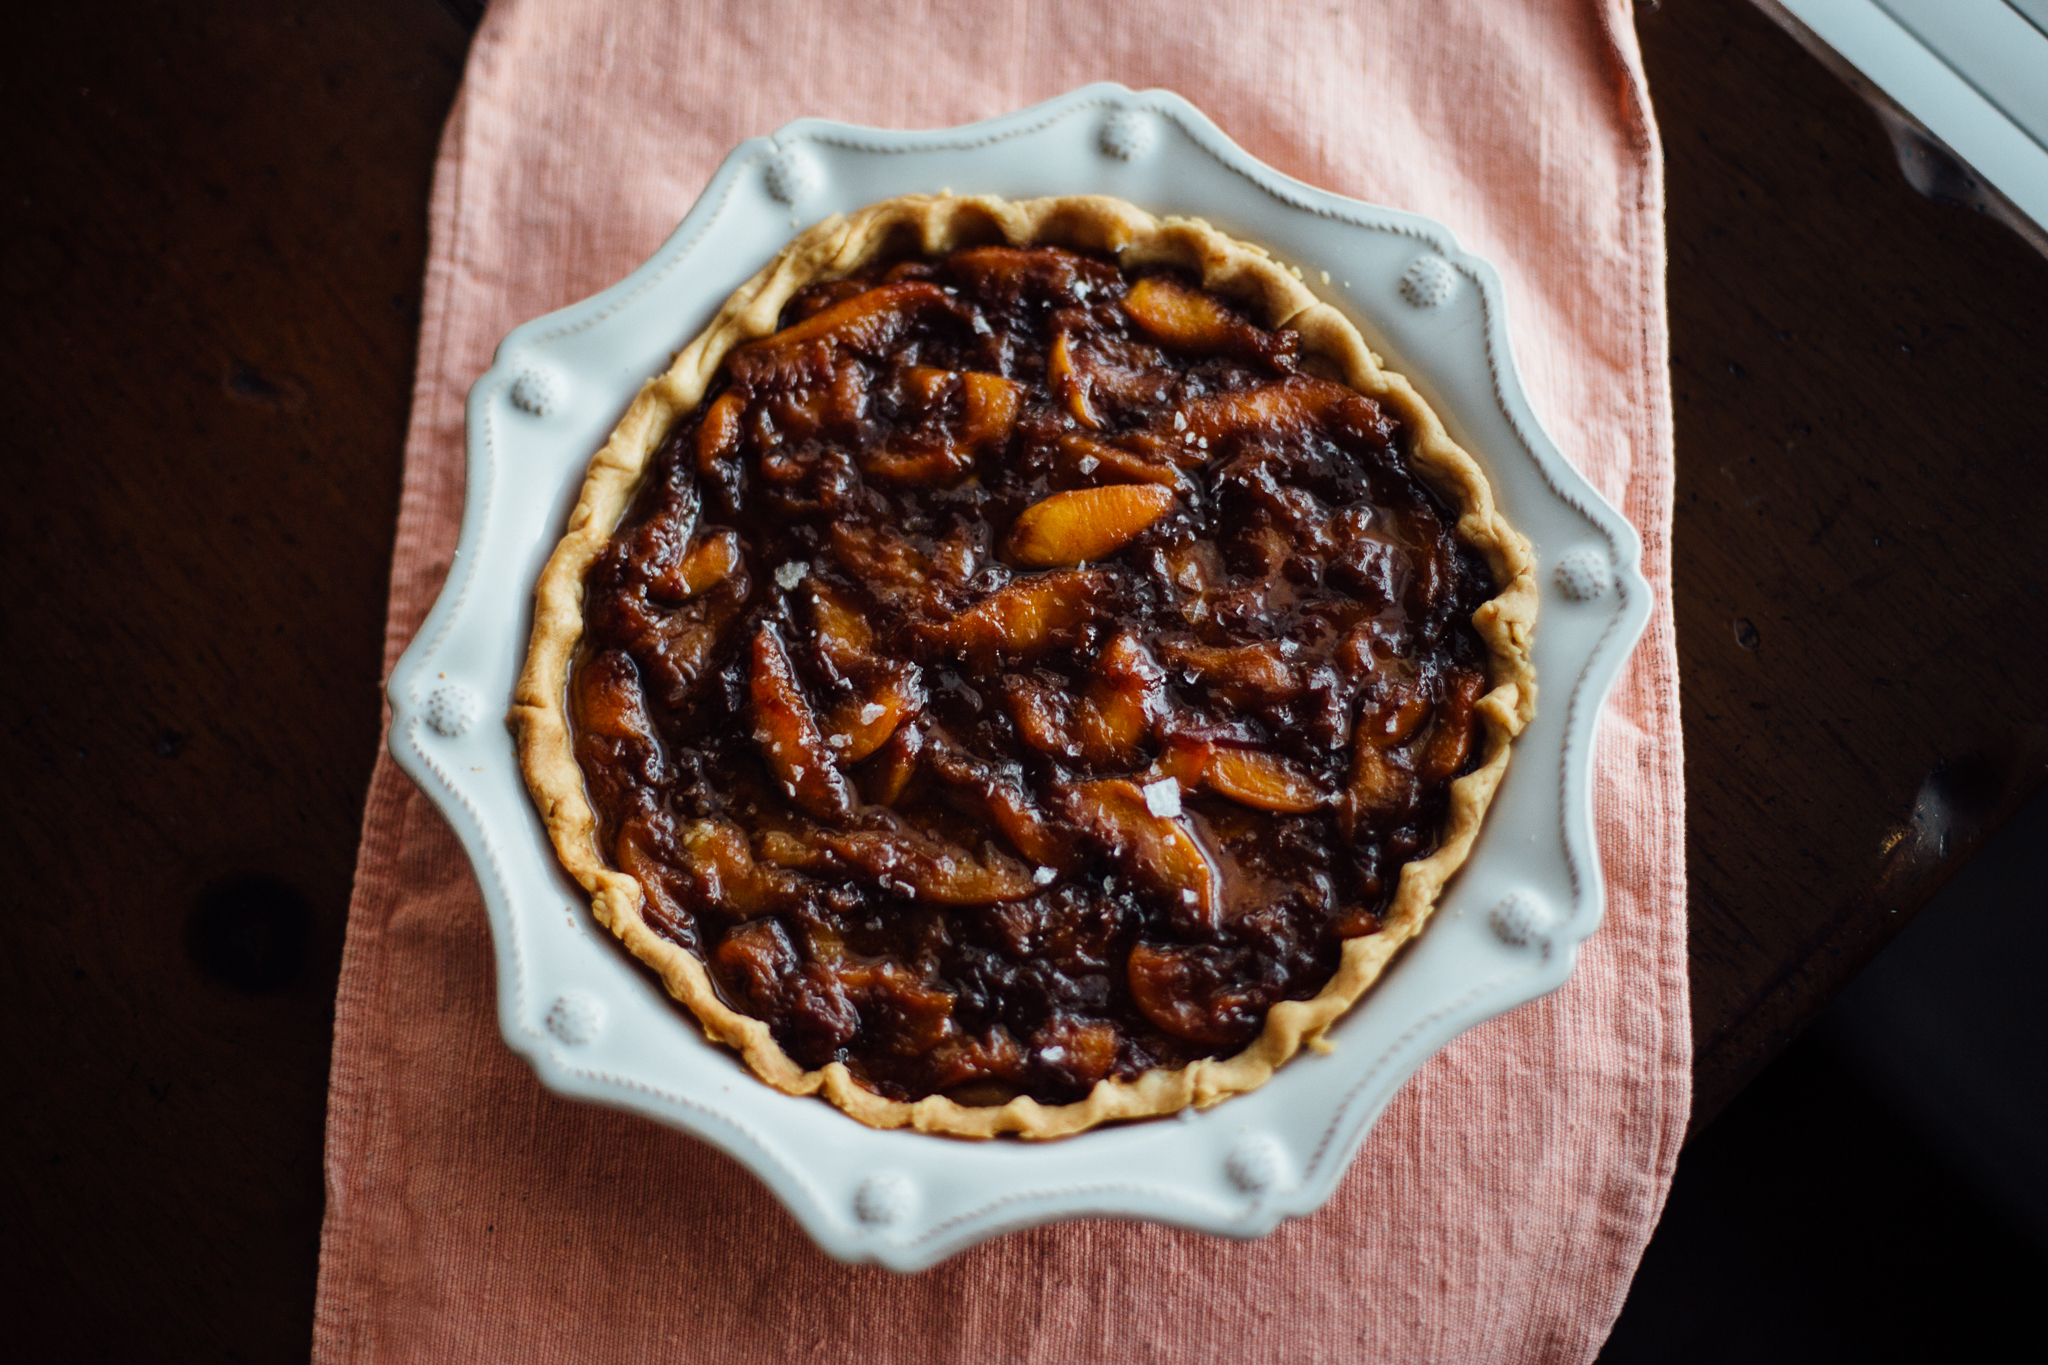 Lemon Ricotta Tart with Brown Butter Caramelized Peaches